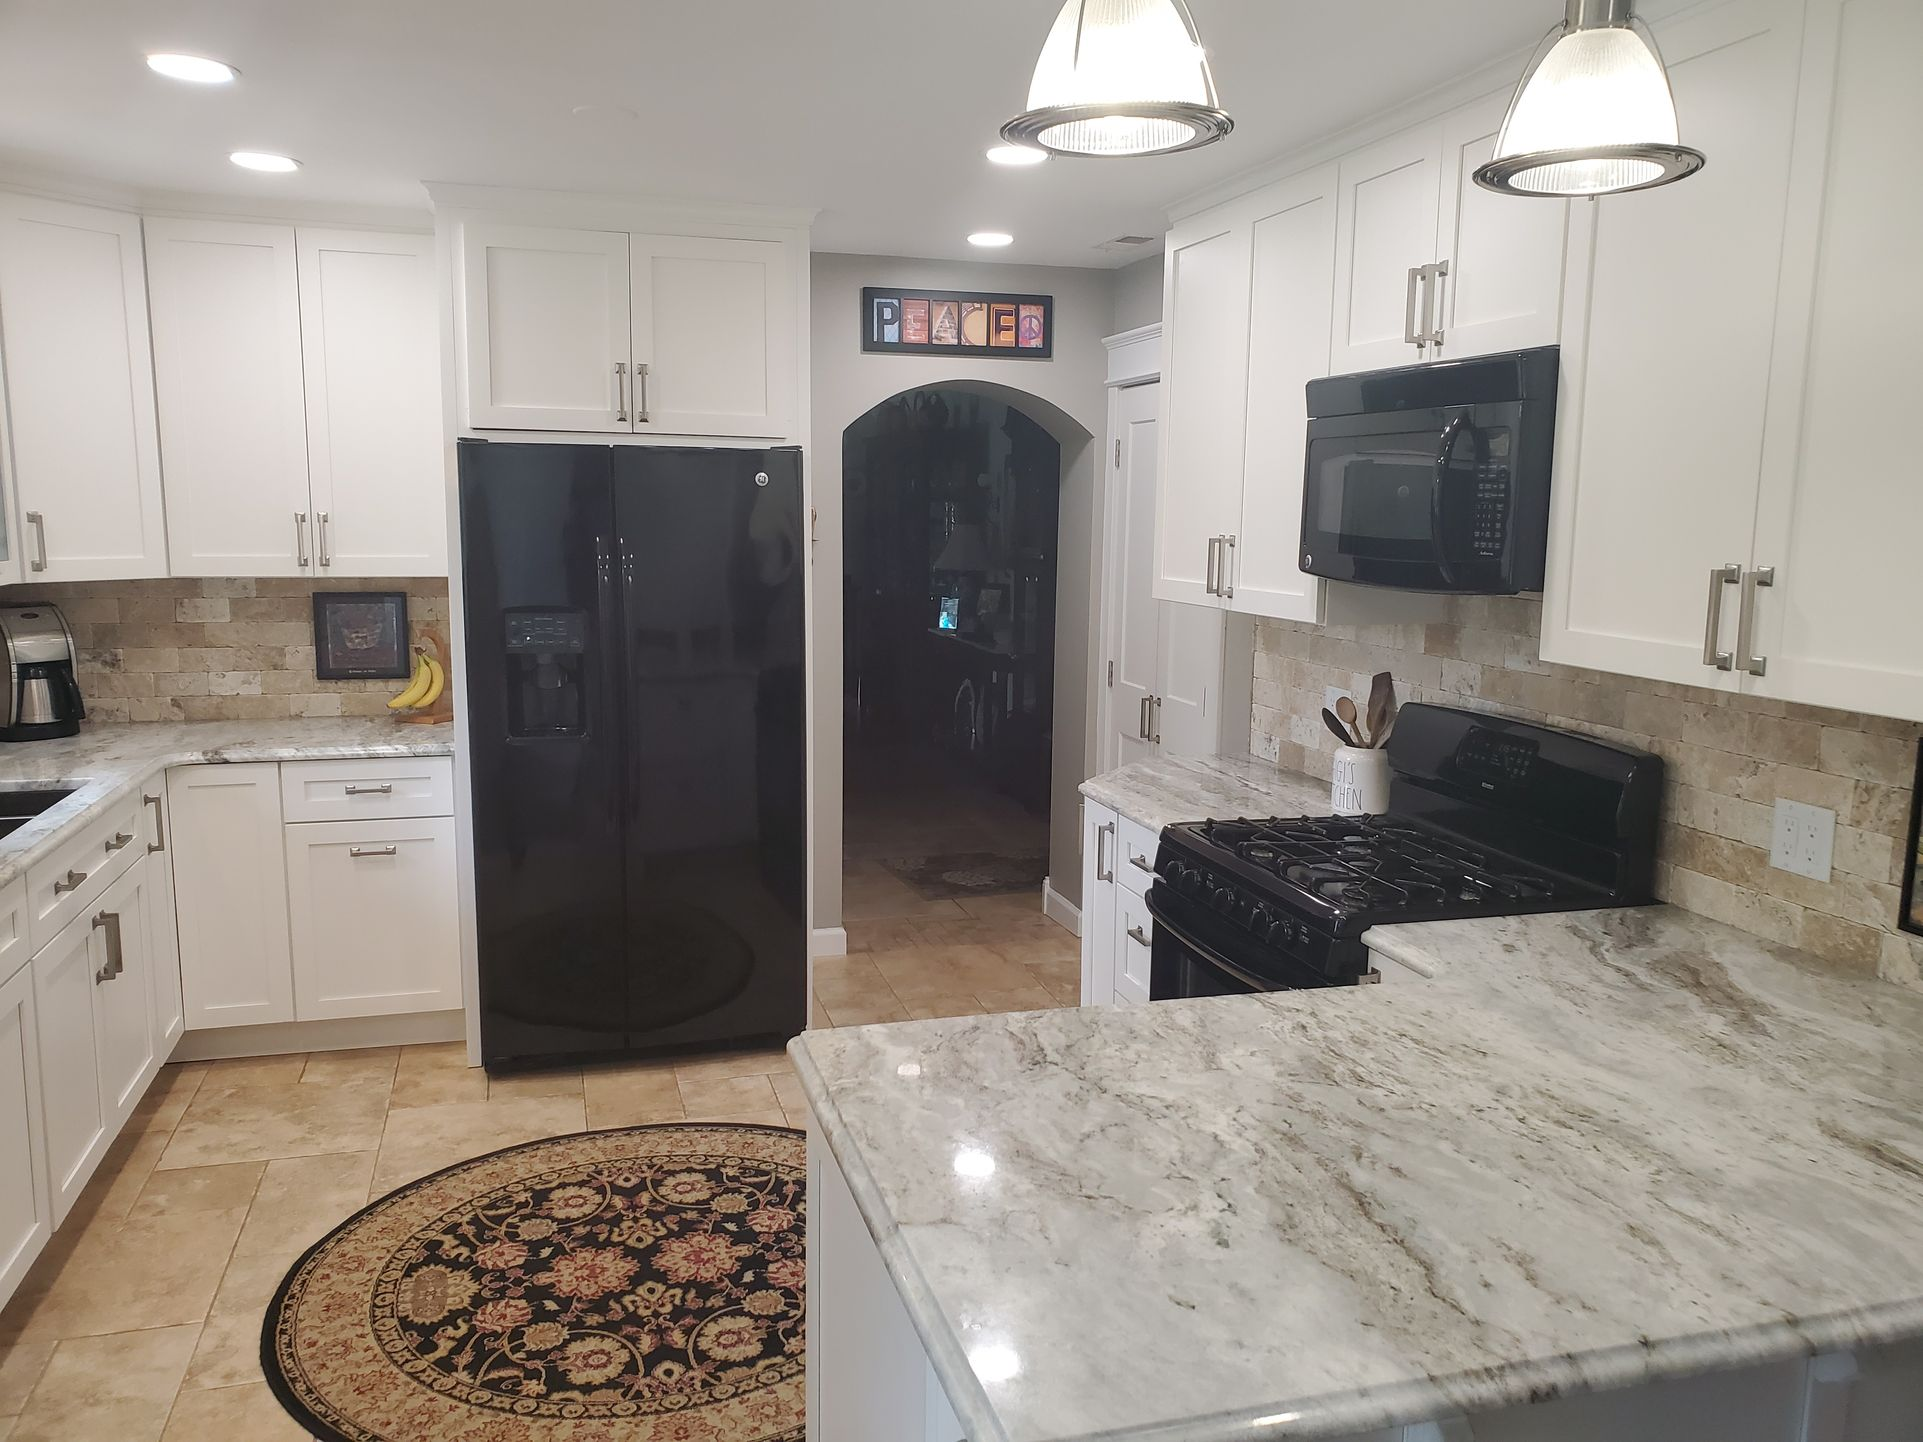 David Harney Kitchen Cabinets Renovation Sunset Ln Antioch IL Fridge